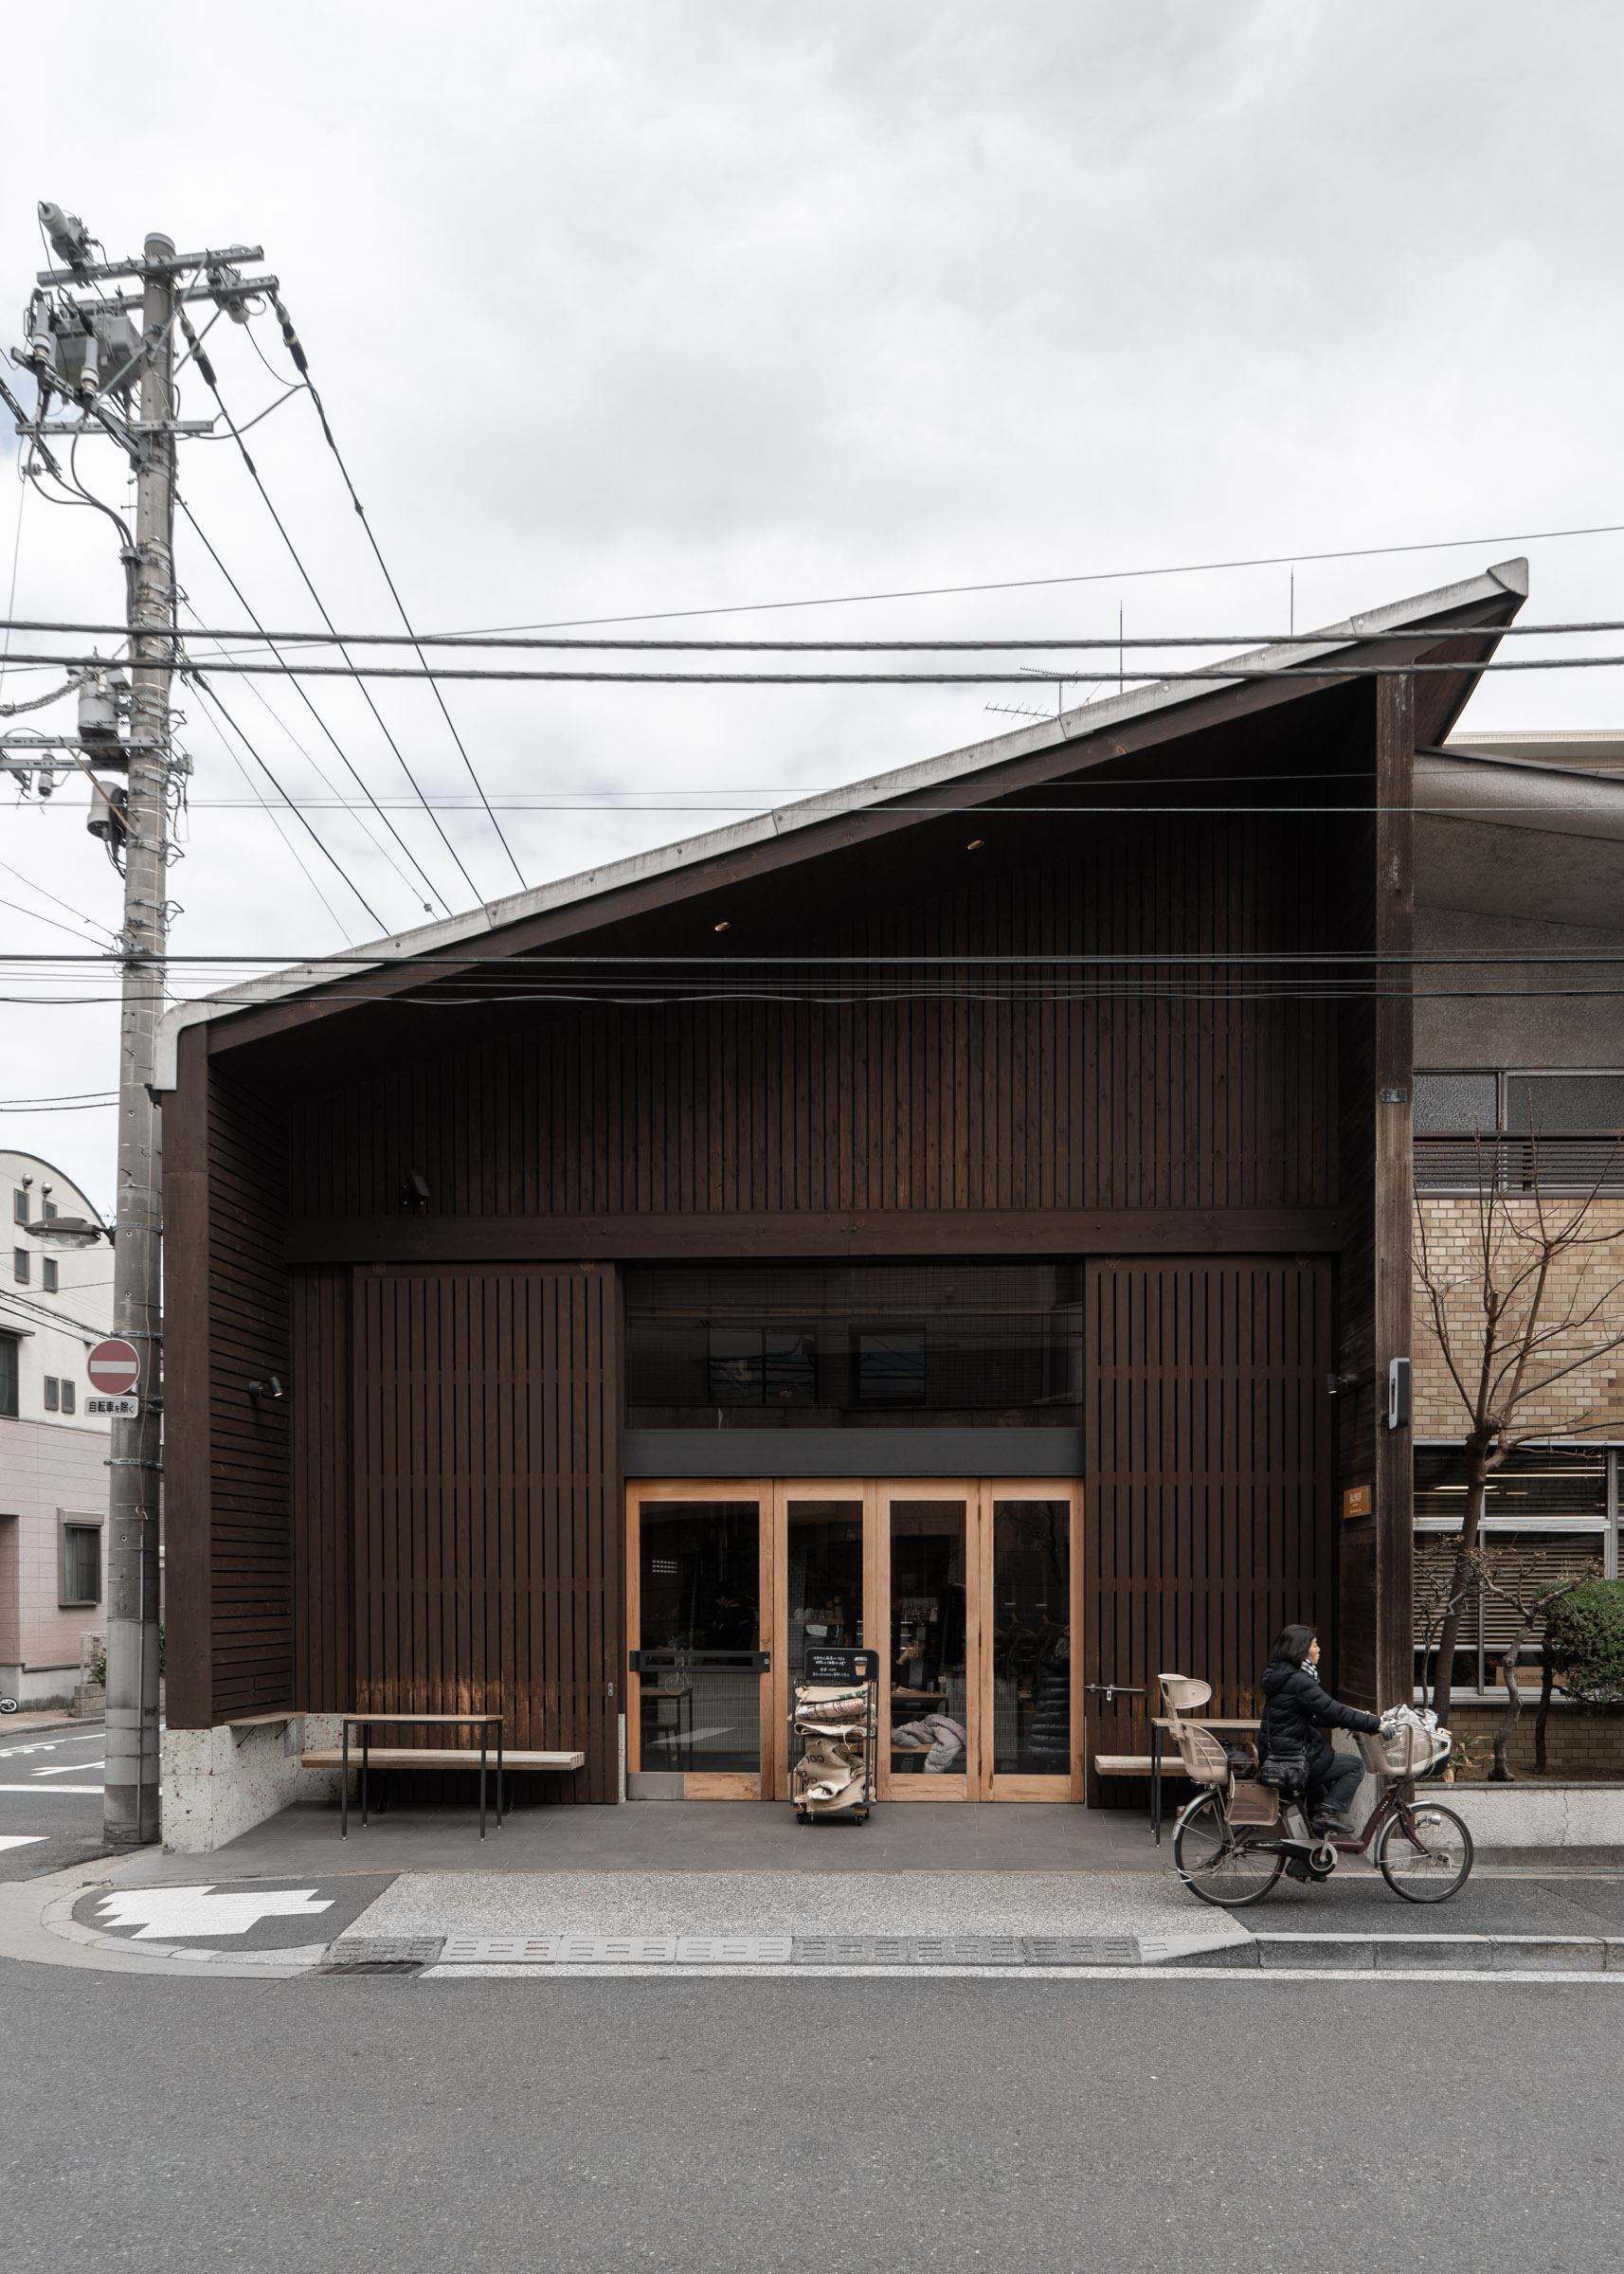 Allpress Espresso Tokyo Roastery & Cafe - Cafes In Tokyo — Tokyo Coffee Shop Guide — Softer Volumes